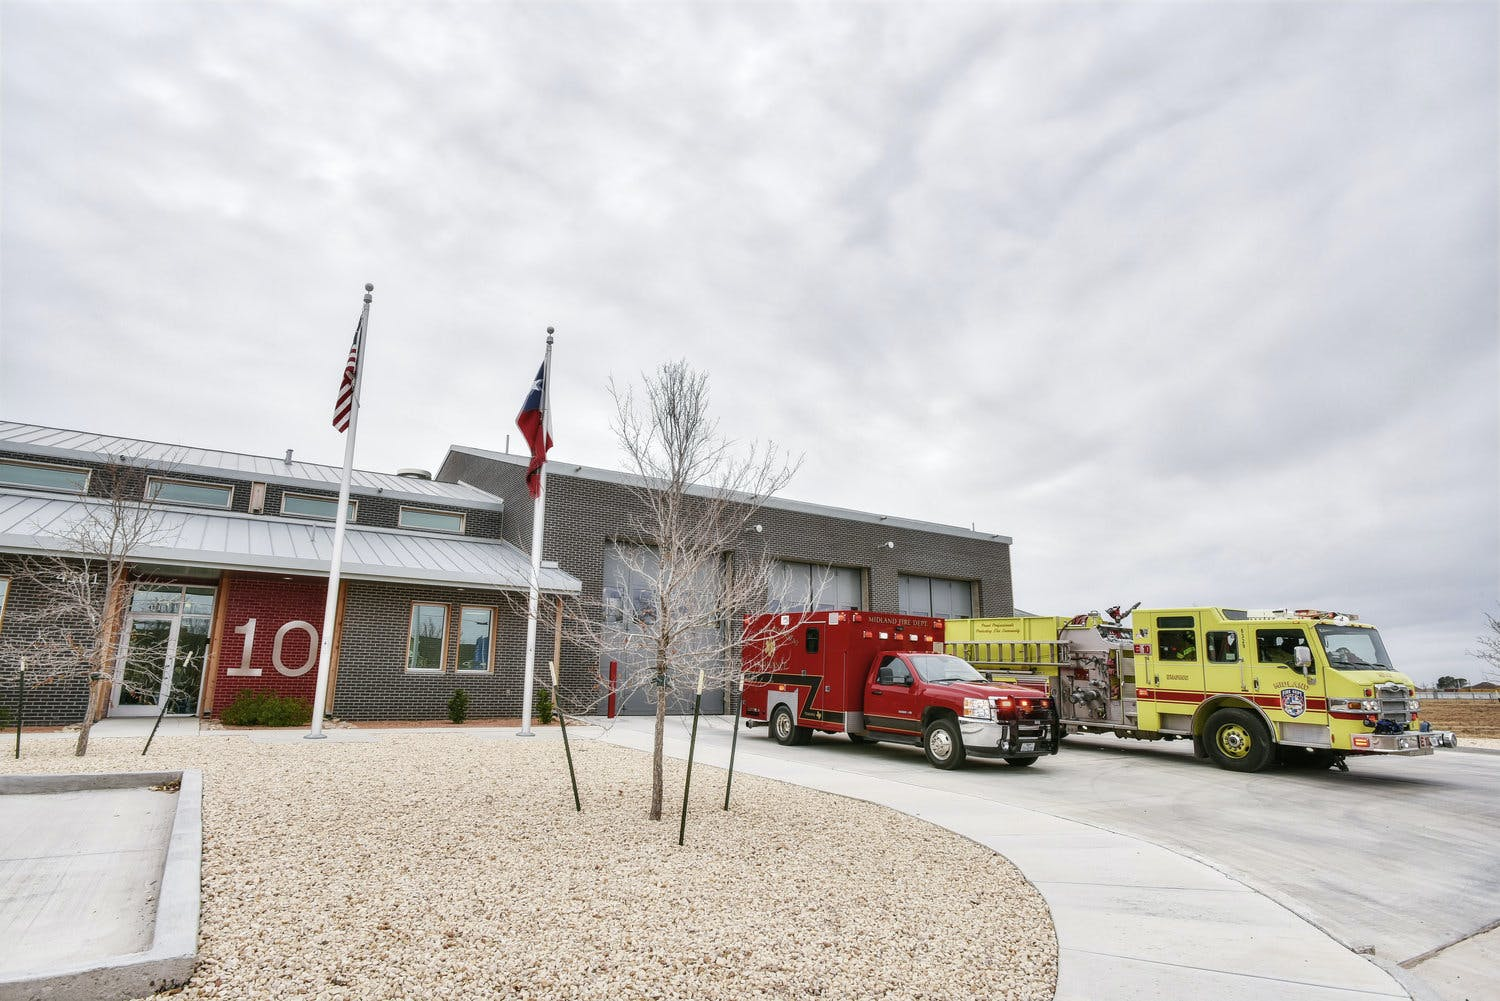 Midland Fire Station Ten Gallery Images